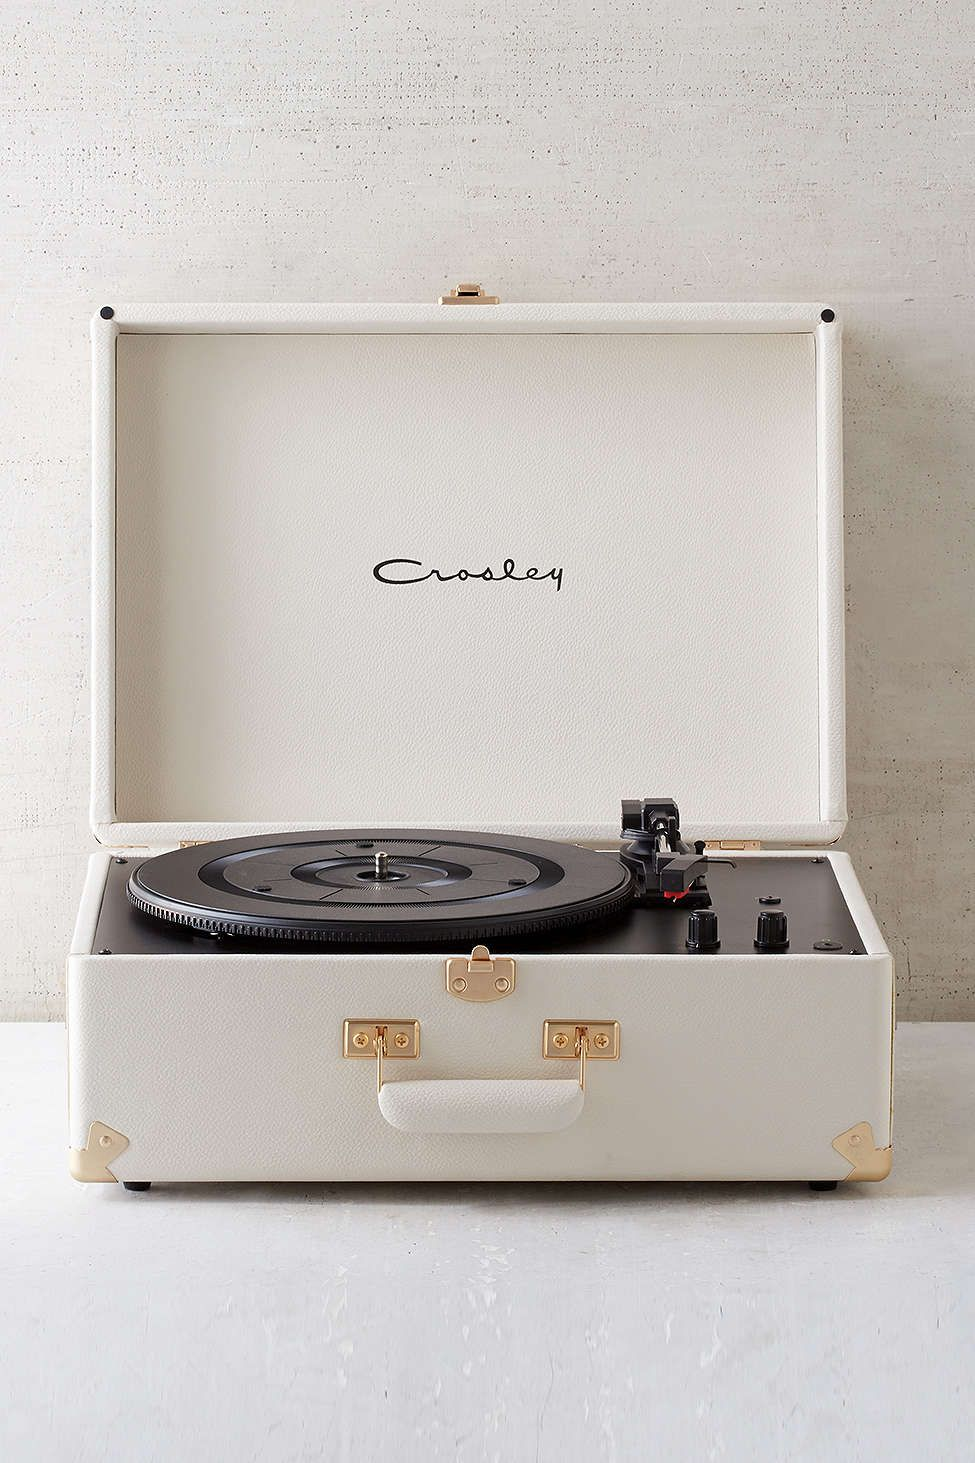 tourne disque vinyle usb portatif blanc keepsake crosley x uo vinyles tourne disques et petit. Black Bedroom Furniture Sets. Home Design Ideas